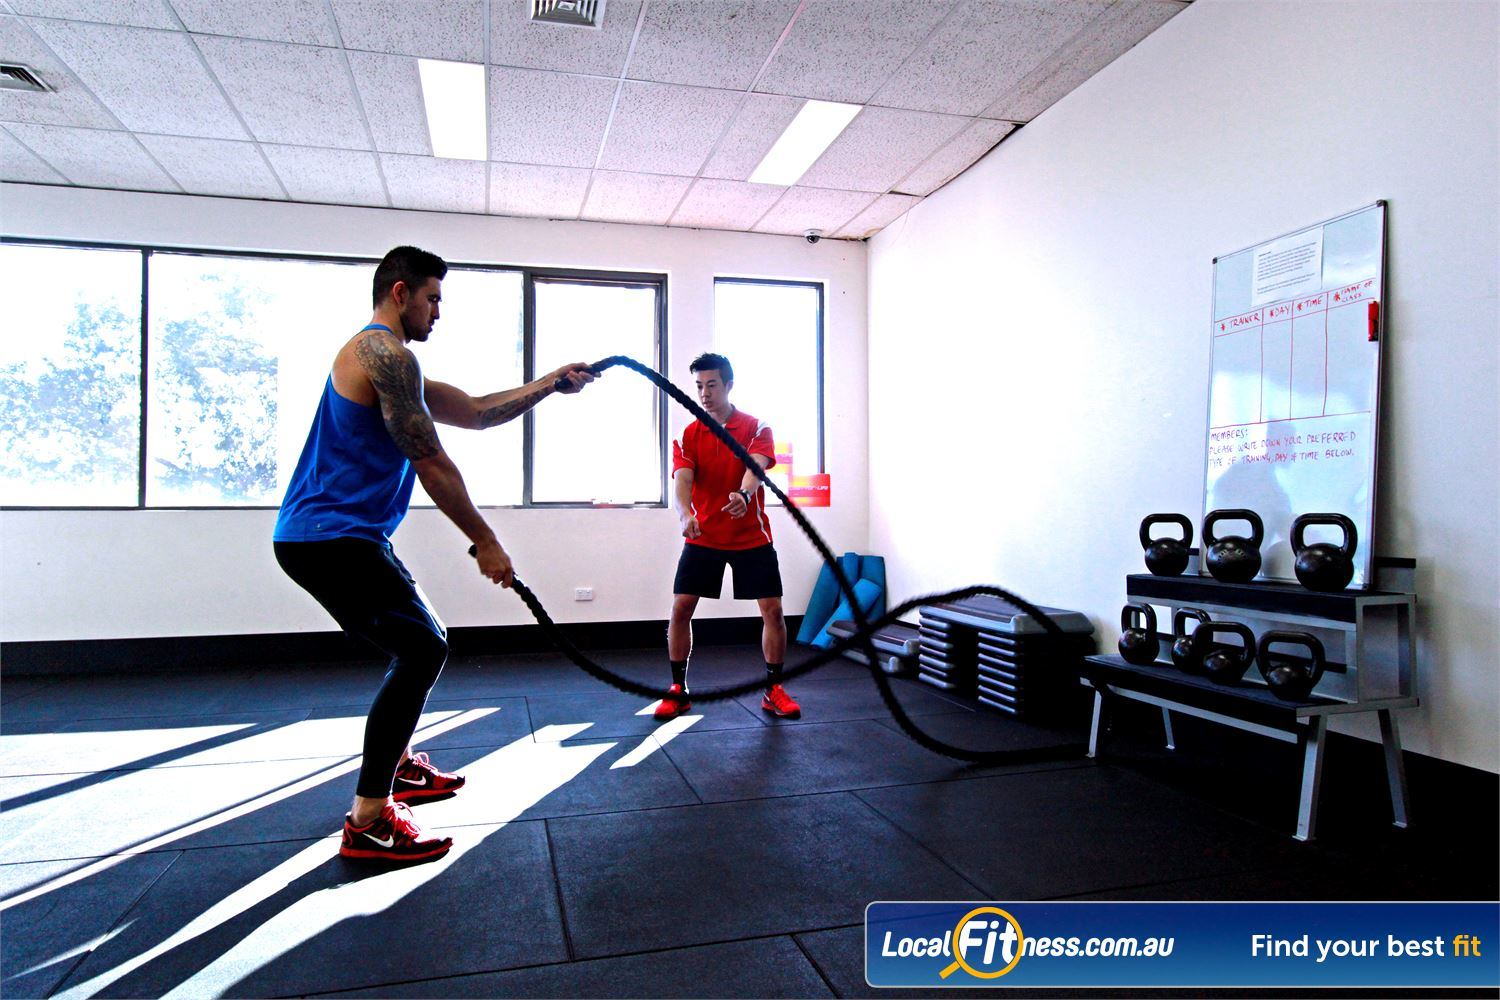 Carlton Fitness Gym Near Princes Hill Our gym staff will show you how to use battle ropes.